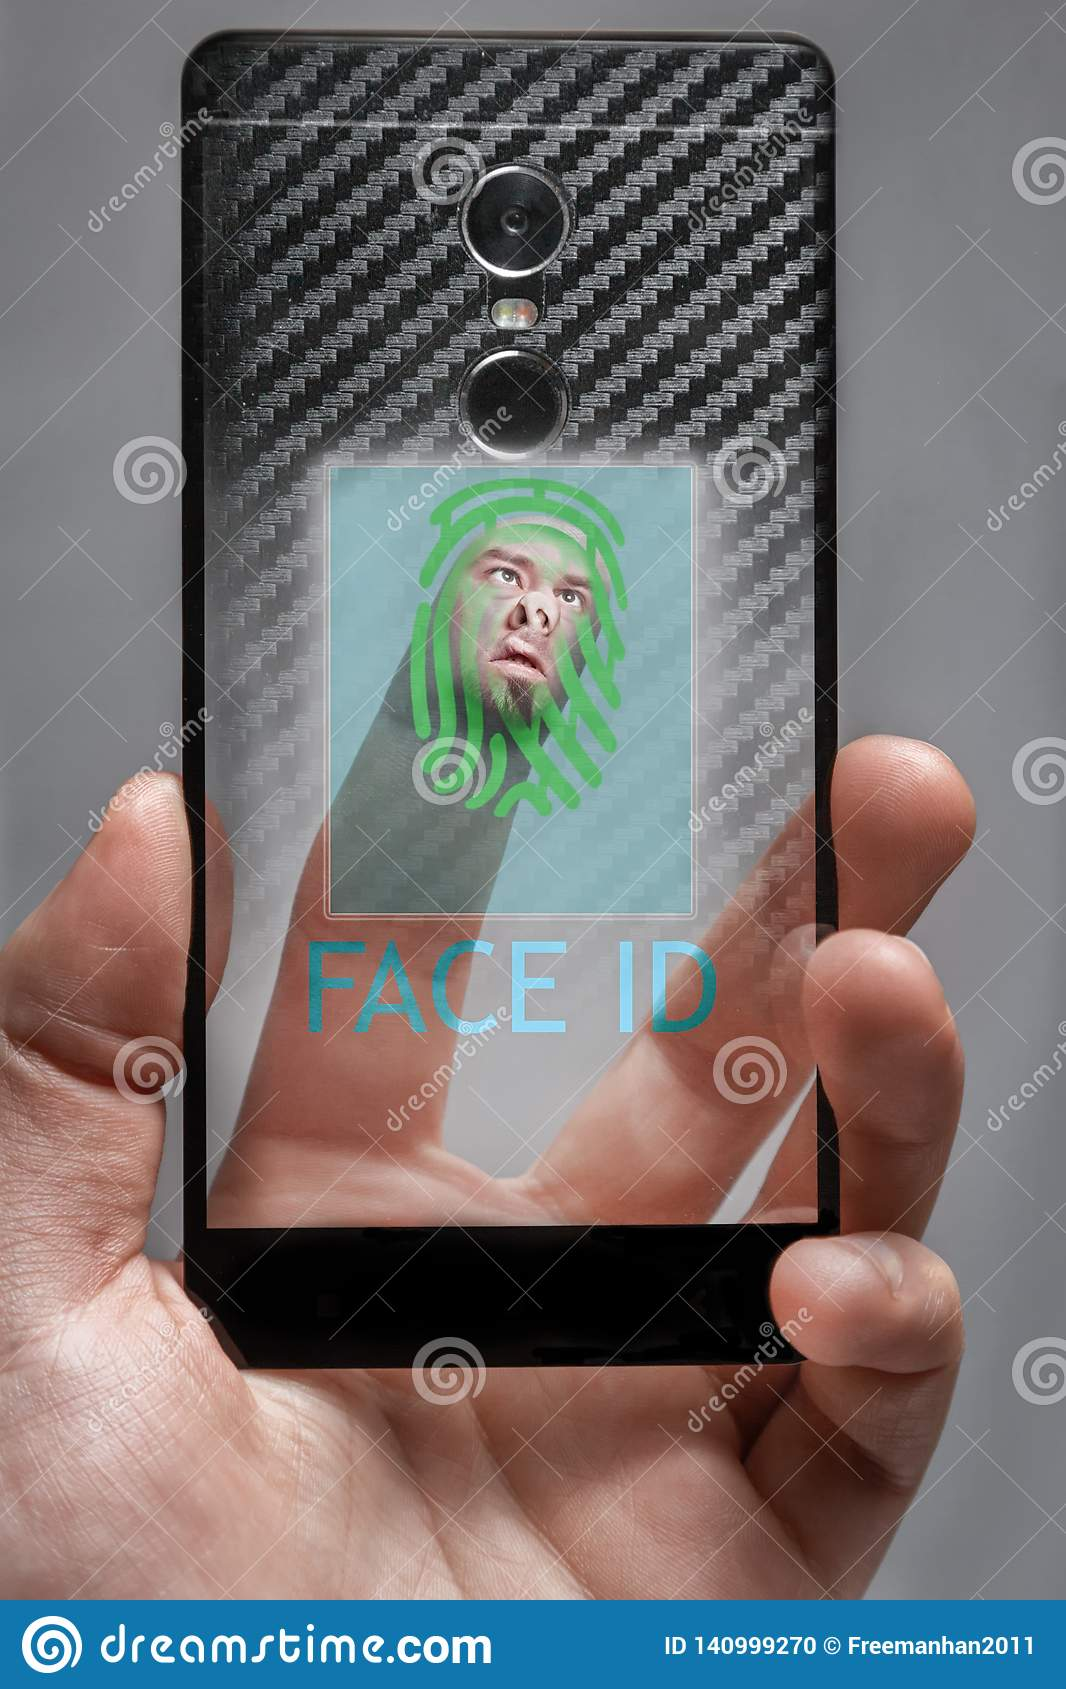 The concept of Face ID . the face on the finger touches the sensor biometrics on the phone screen